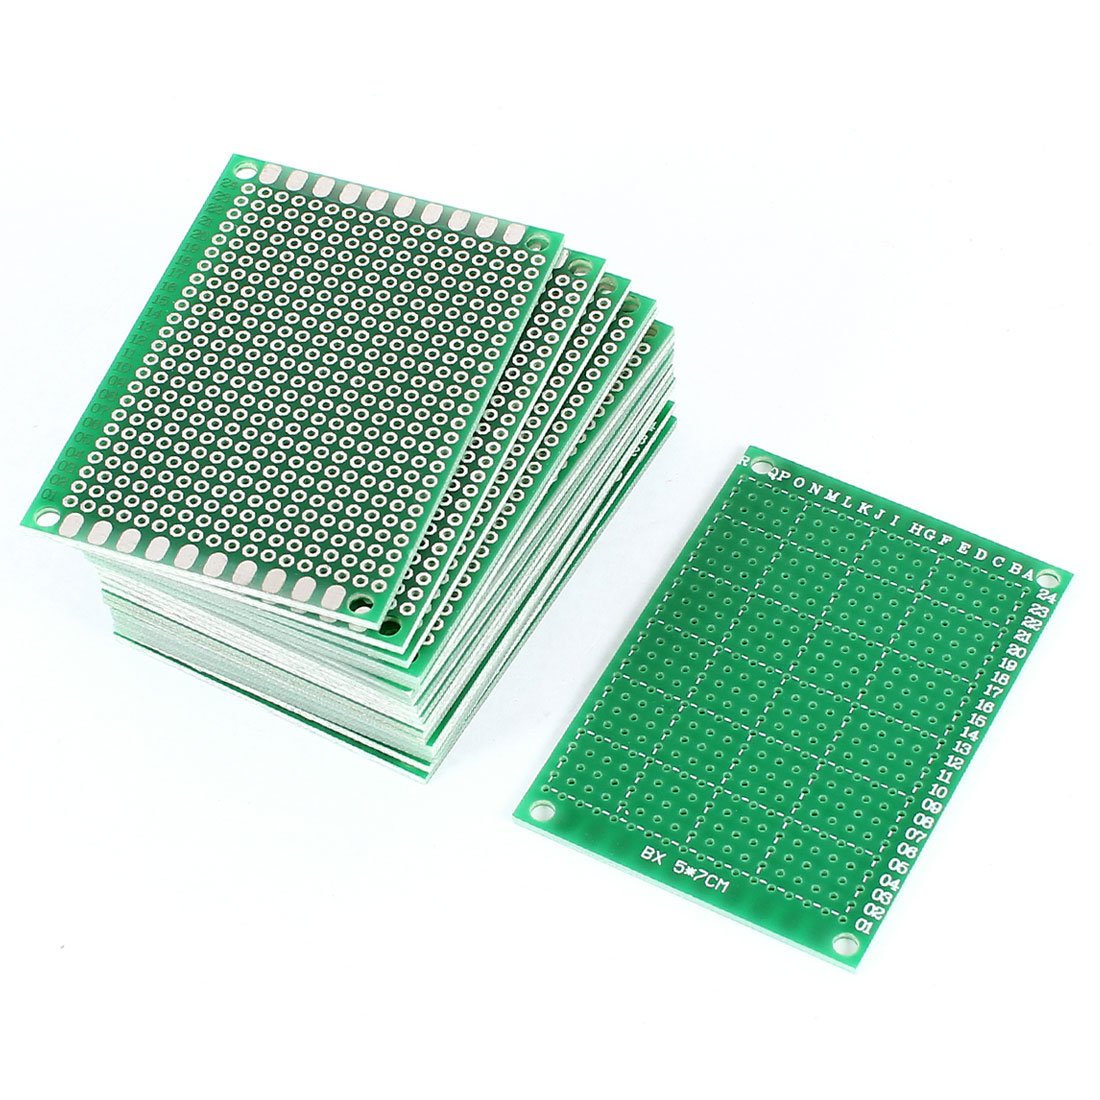 20 PCS 5cm x 7cm One-Sided Prototype Paper Tinned Universal PCB Print Circuit Board for DIY